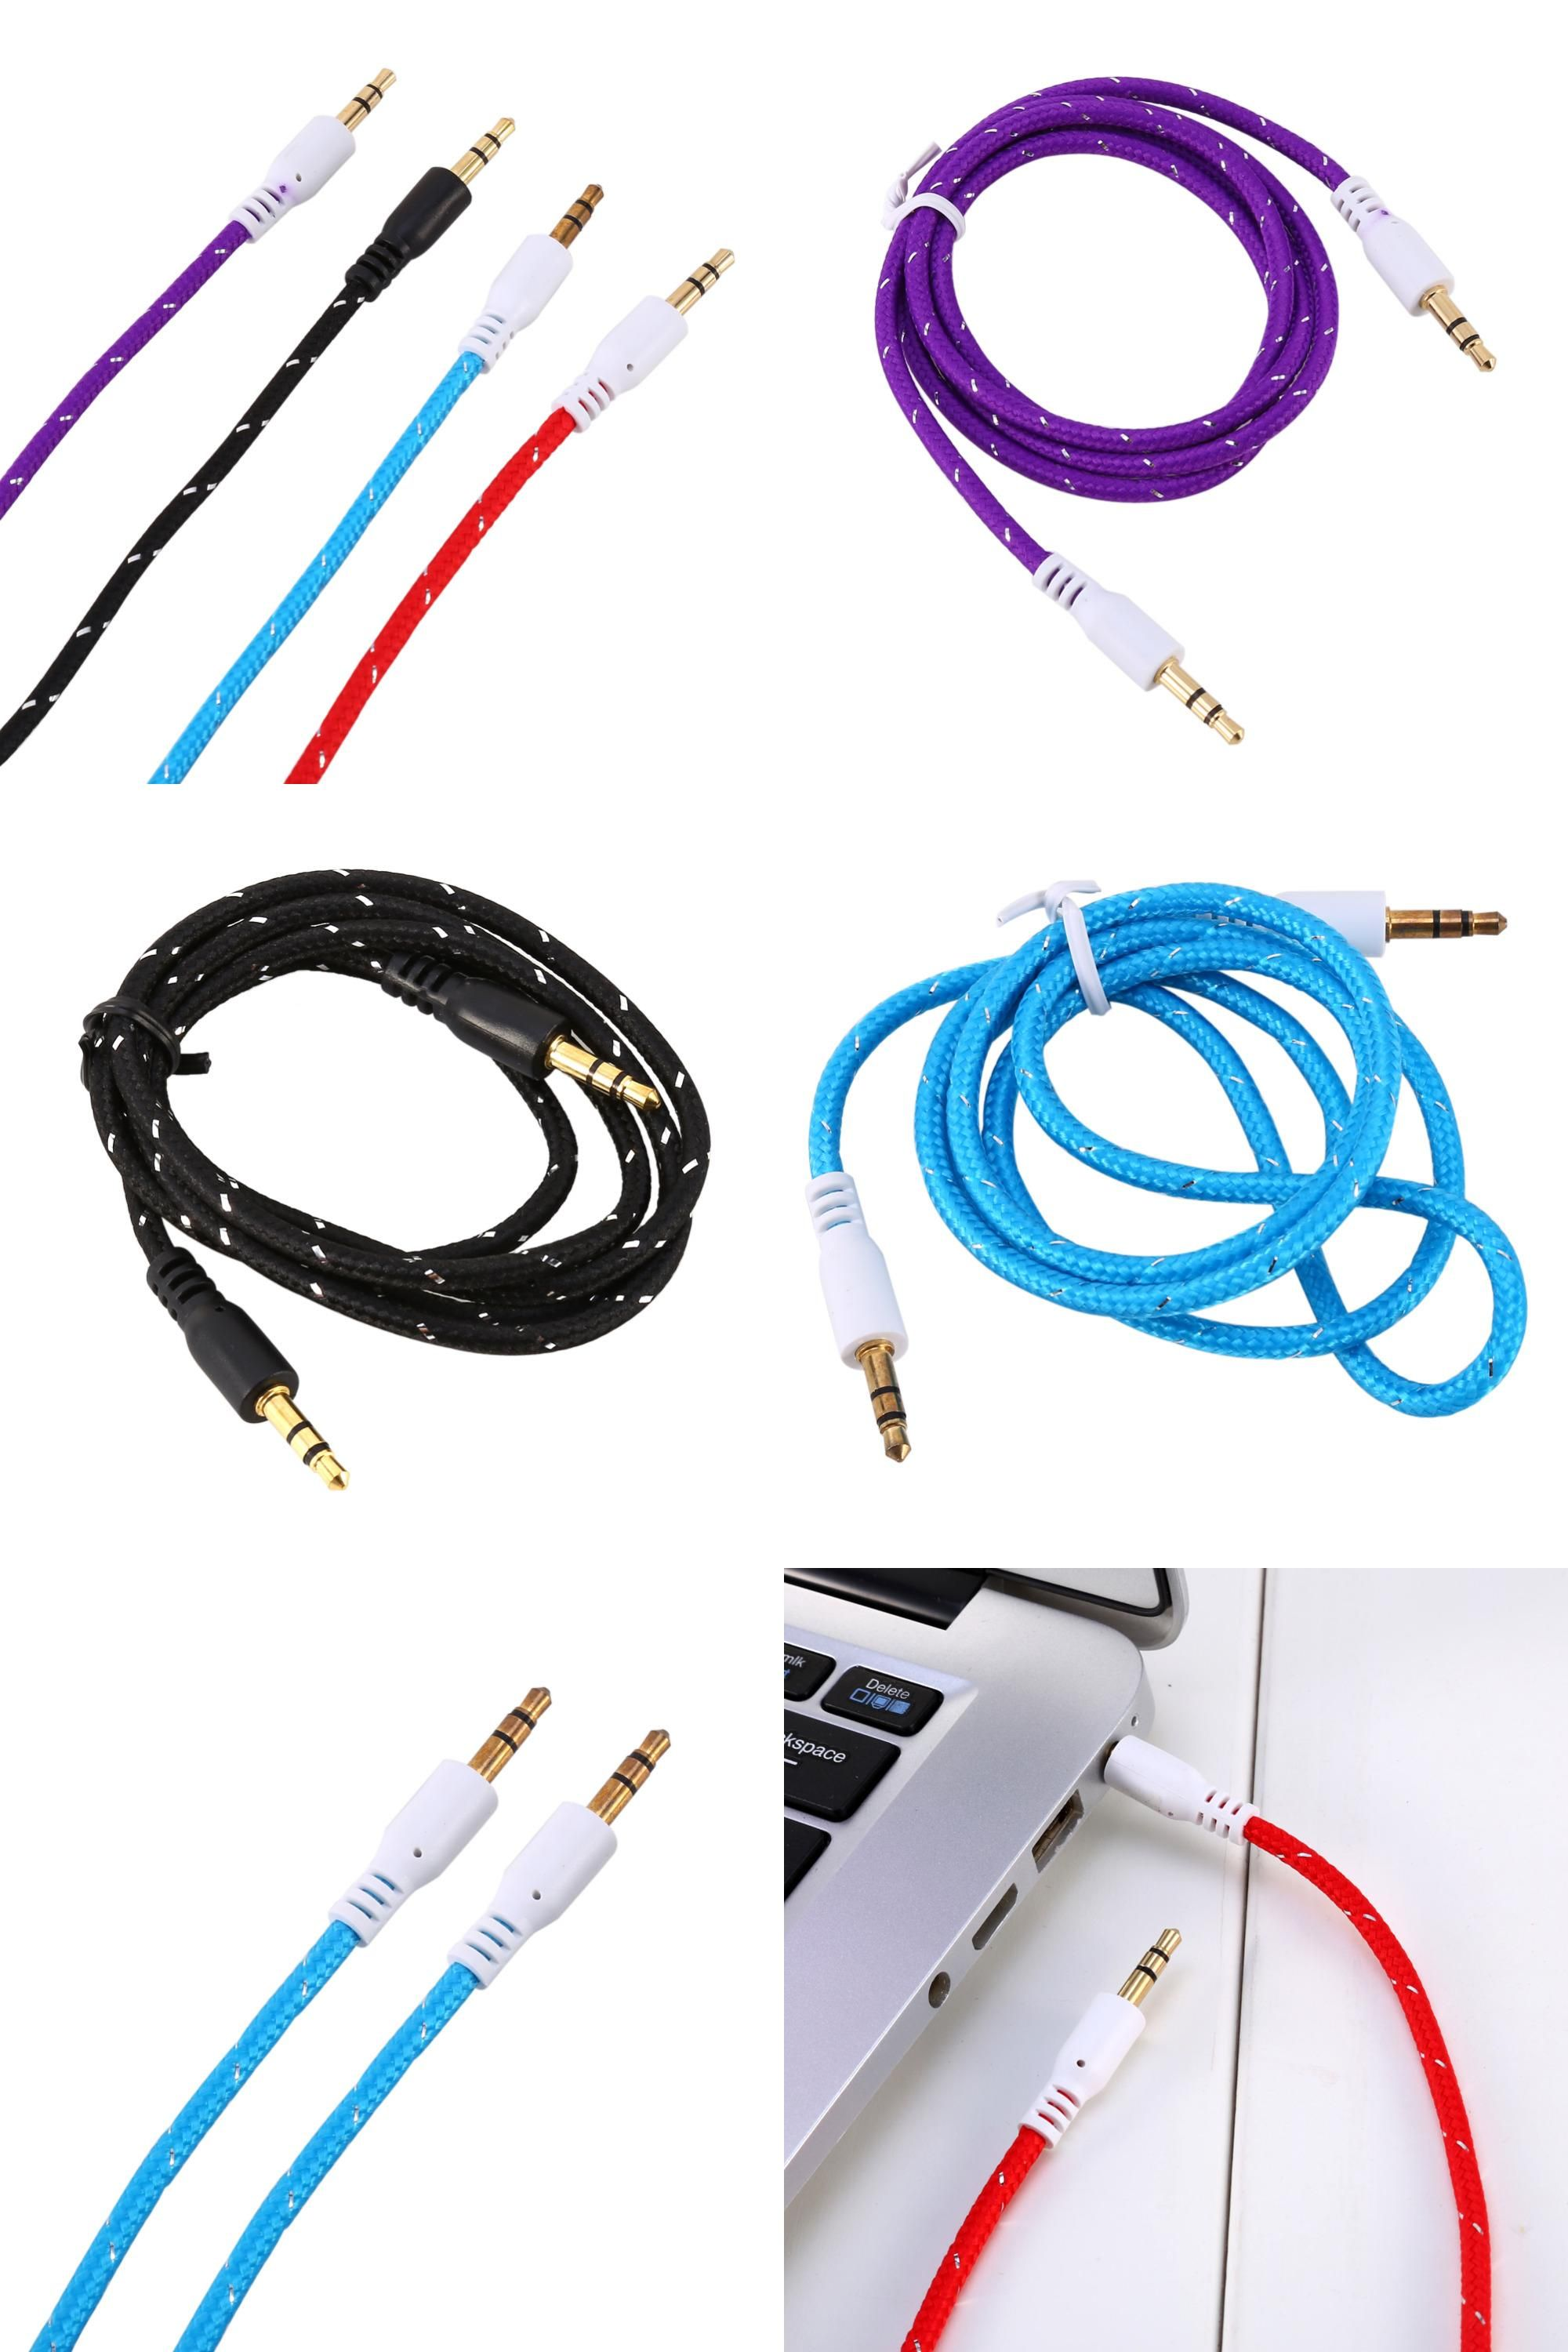 Visit To Buy Aux Auxiliary Jack Cable 3 5mm Braided Male To Male Stereo Audio For Ipod Car Phone With Best Quality Advertisem Male To Male Stuff To Buy Ipod